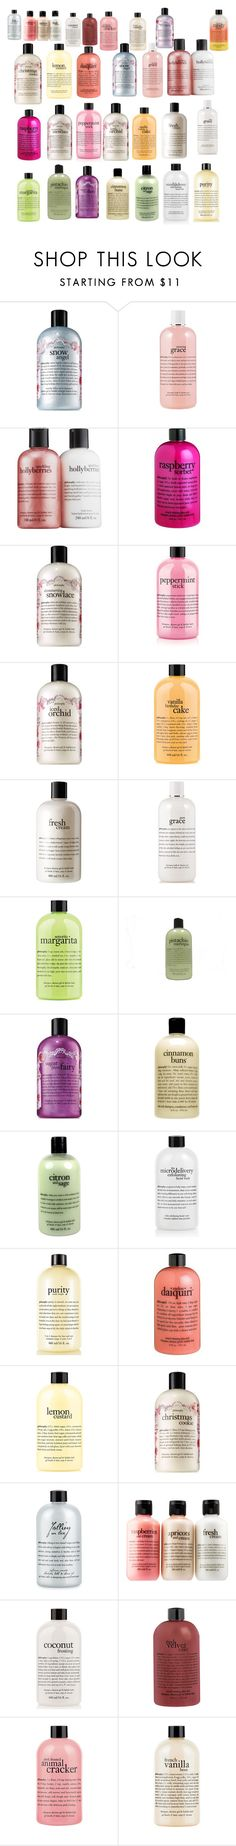 """""""What is you favorite Philosophy soap?"""" by wildfire-love ❤ liked on Polyvore featuring beauty and philosophy"""